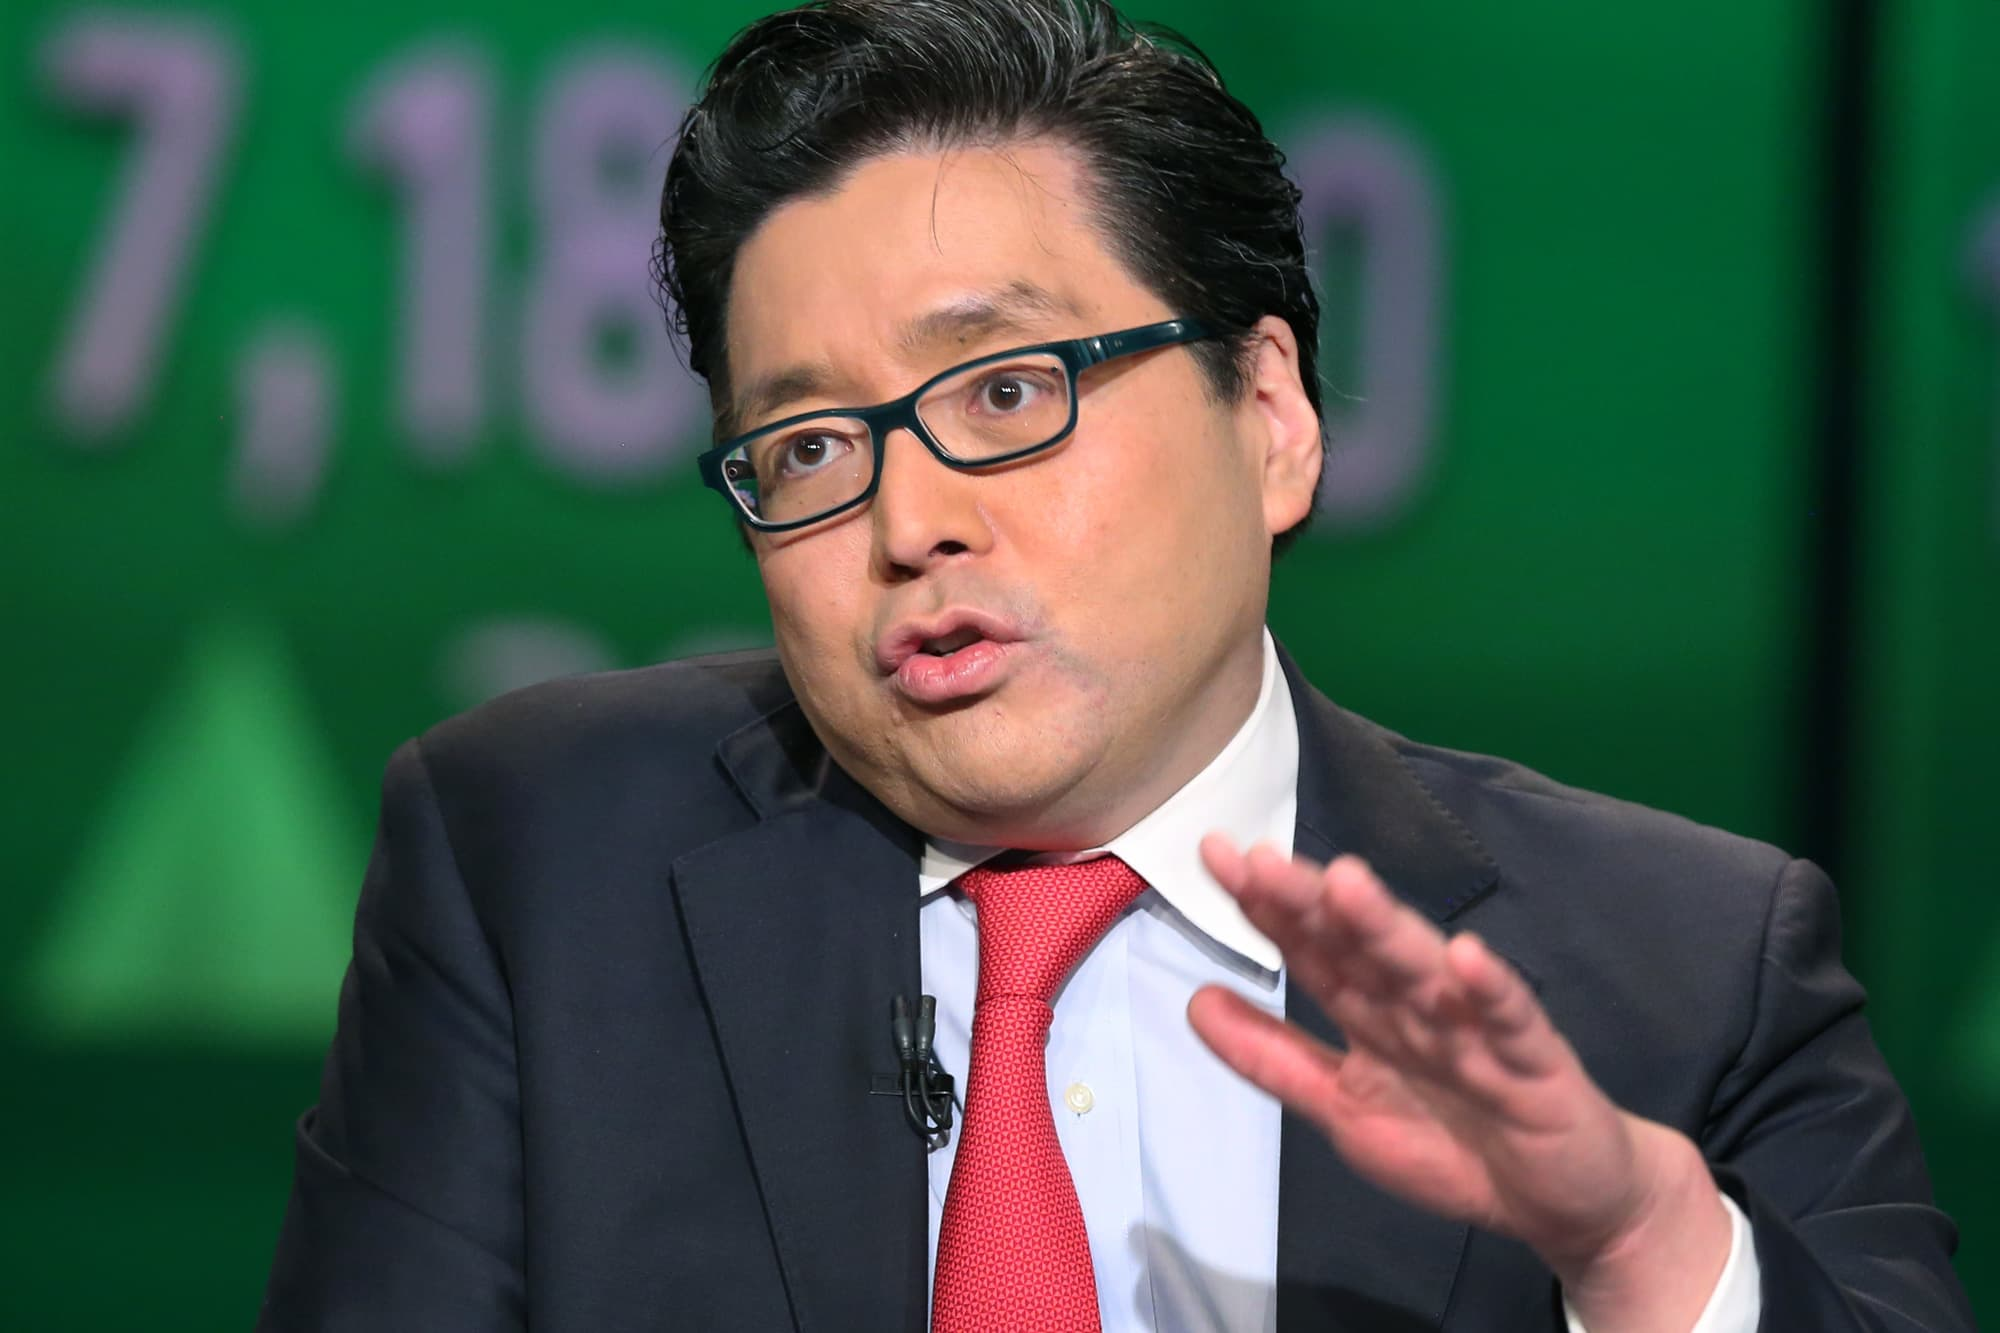 'Bitcoin is easily going to take out its all-time highs': Fundstrat's Tom Lee